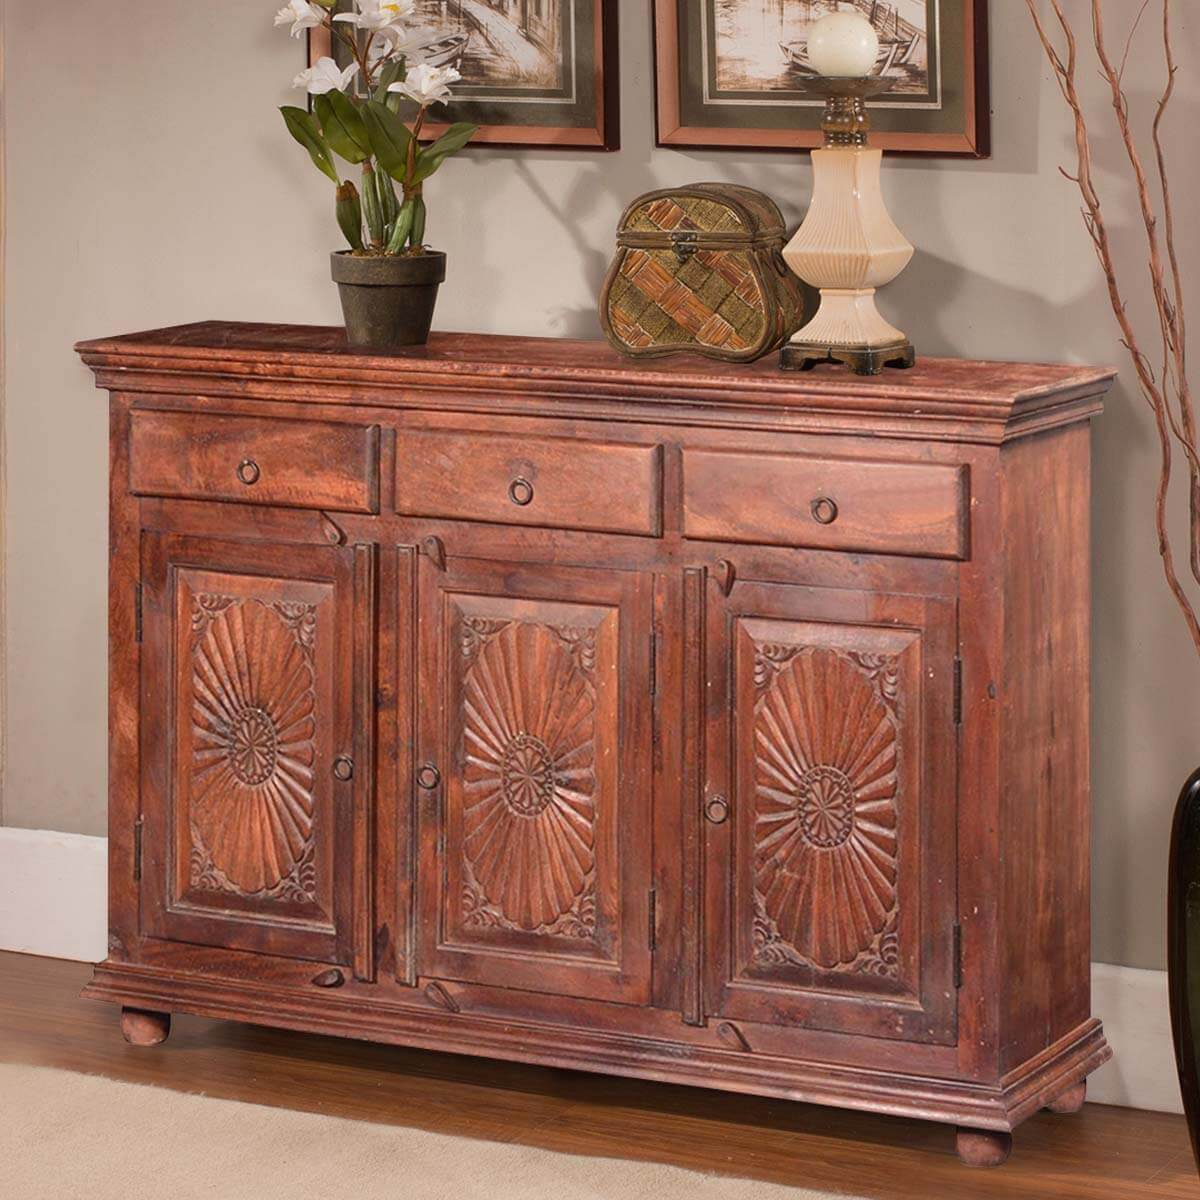 Reclaimed Wood Sideboard ~ Traditional sunburst reclaimed wood drawer sideboard cabinet